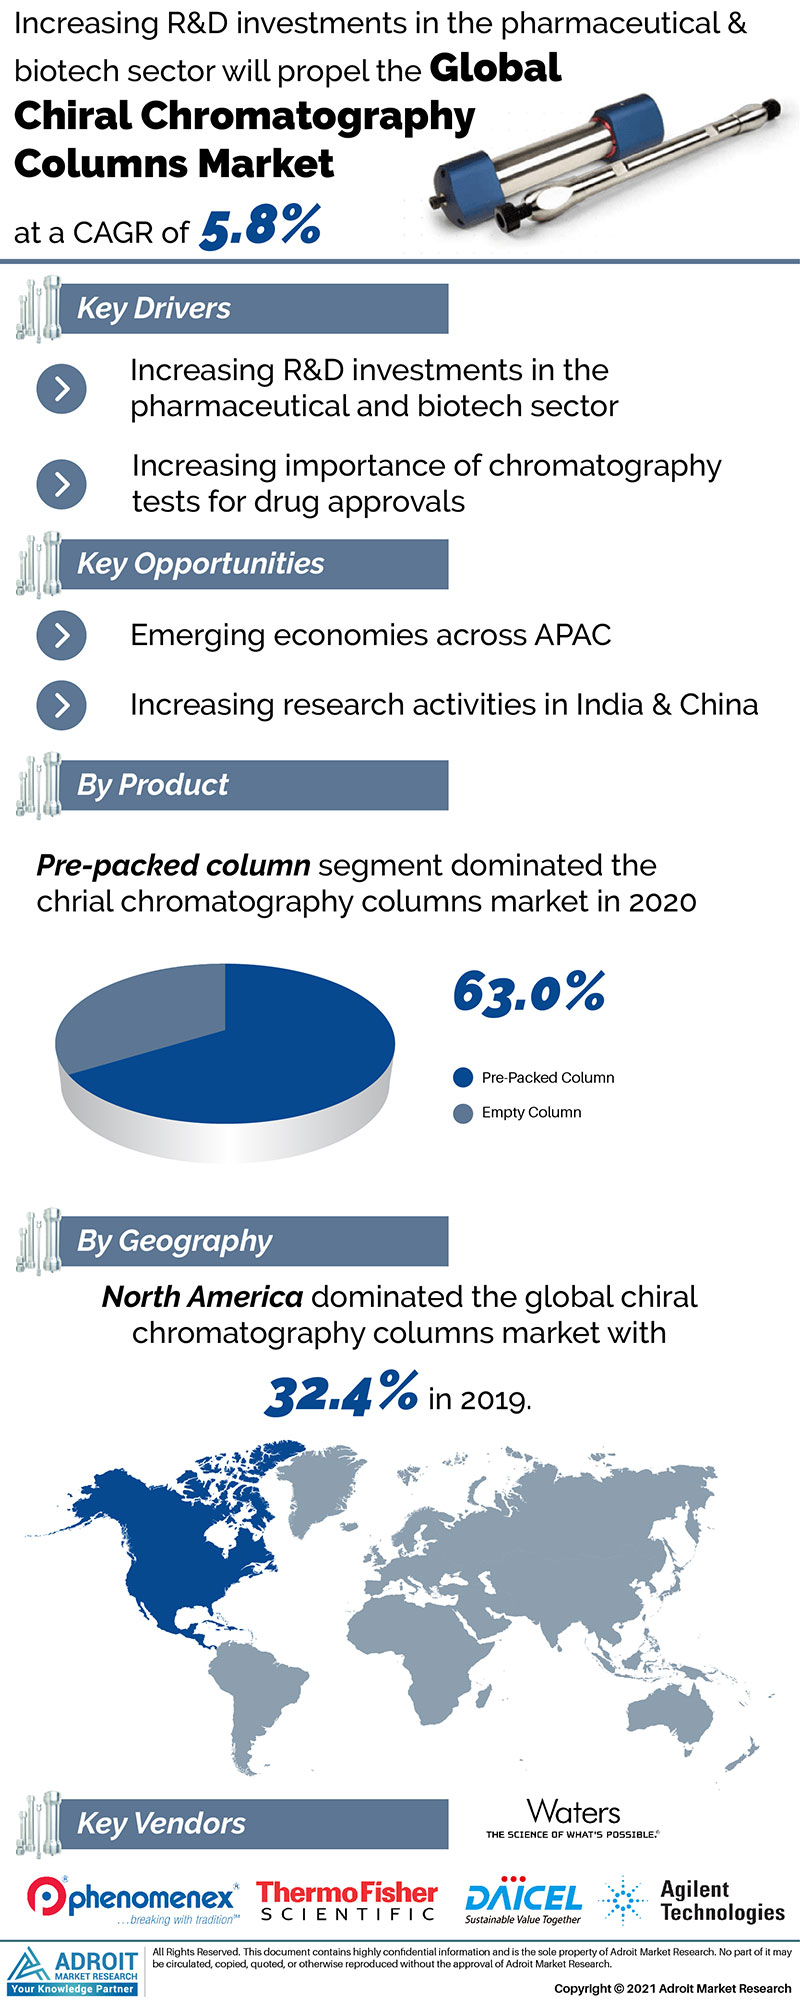 Chiral Chromatography Columns Market Size 2017 By Application, Product, Region and Forecast 2019 to 2025